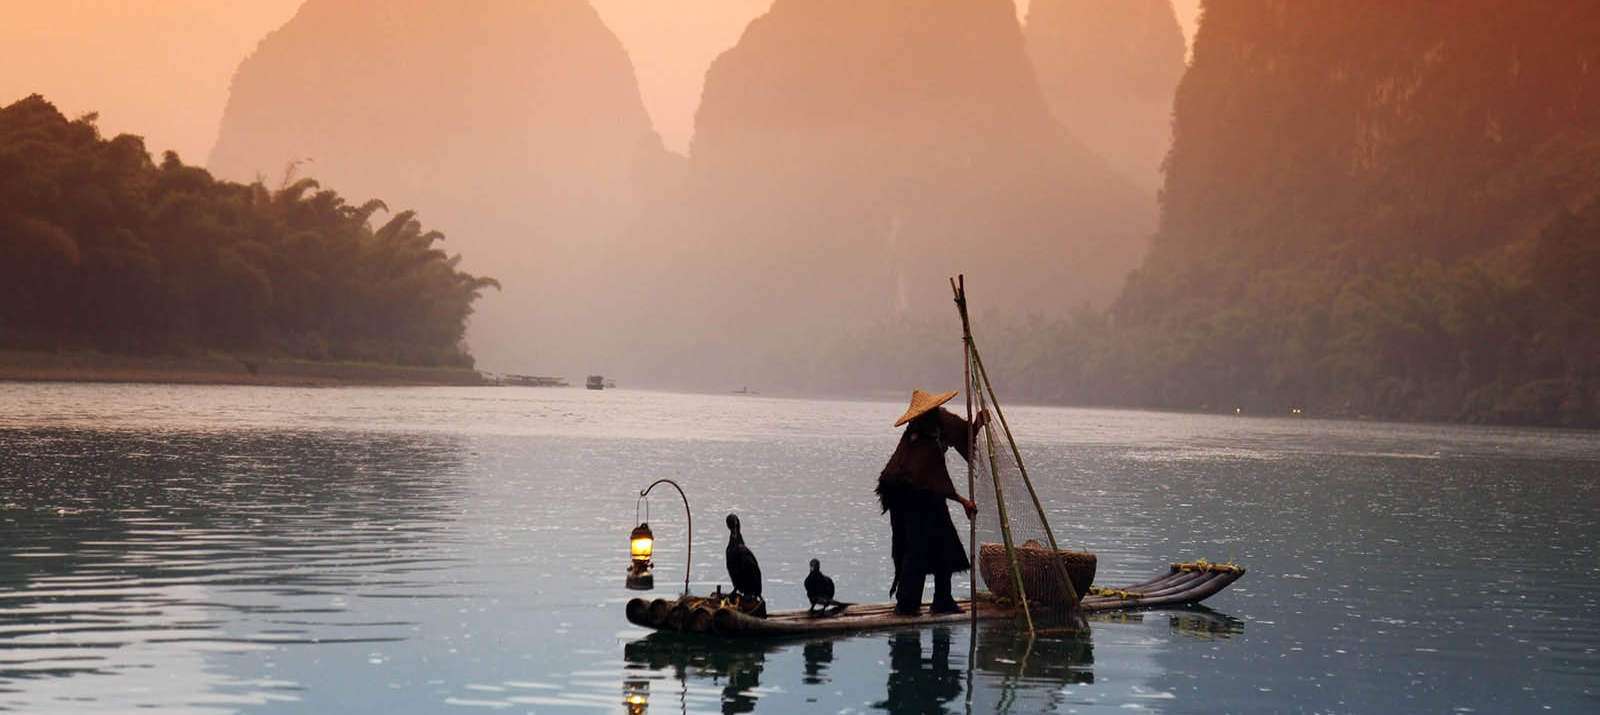 man fishing yangshuo guangxi china